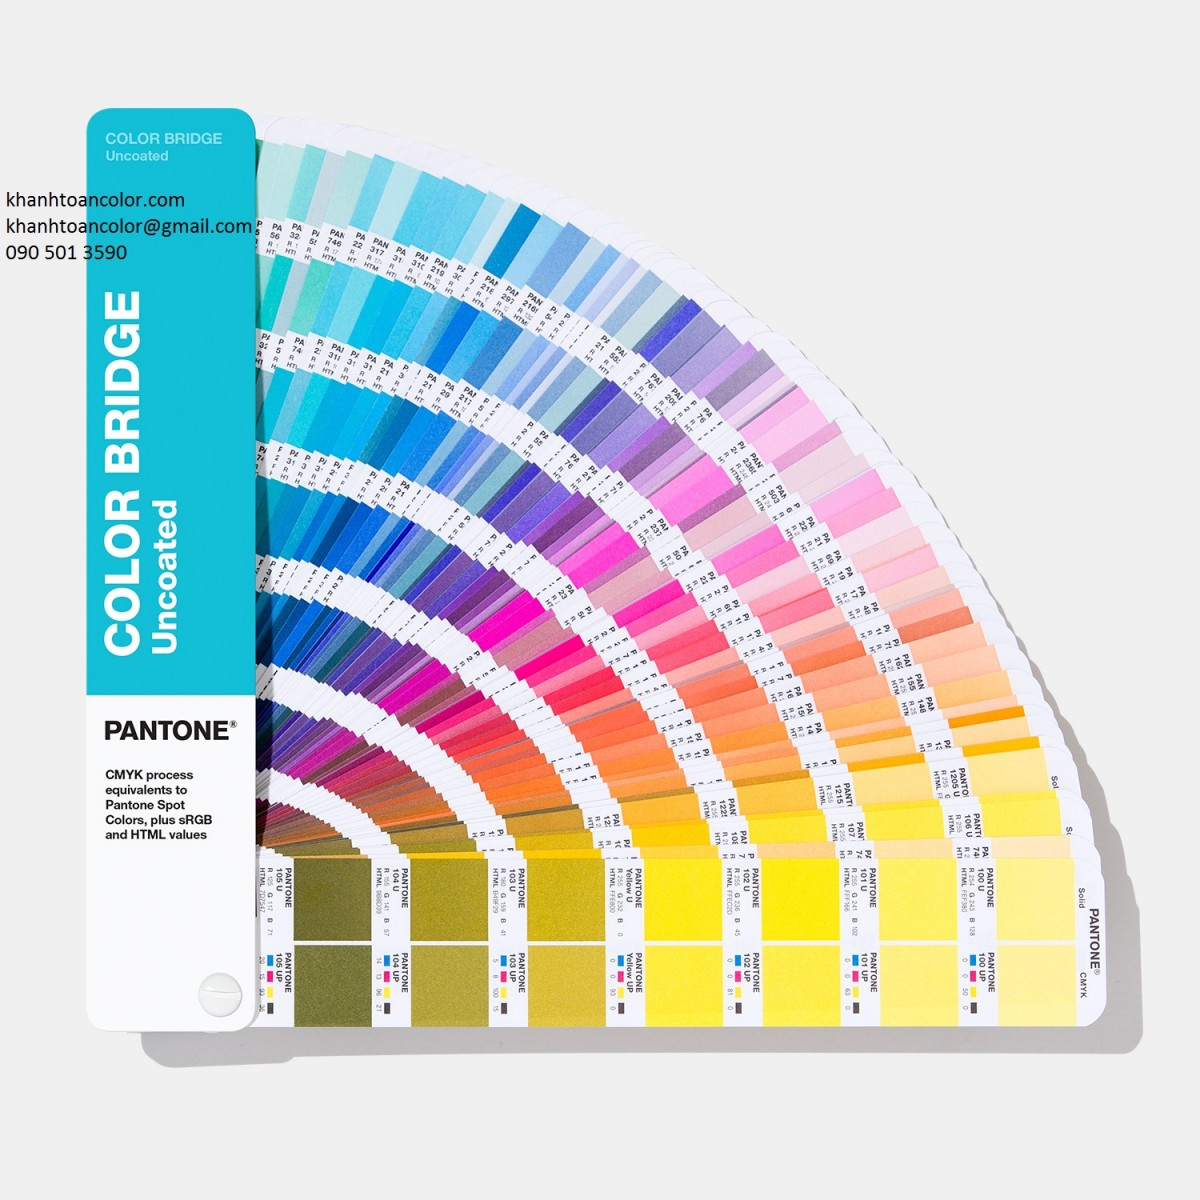 bang mau Pantone Color Bridge Uncoated GG6104A (New 2019)